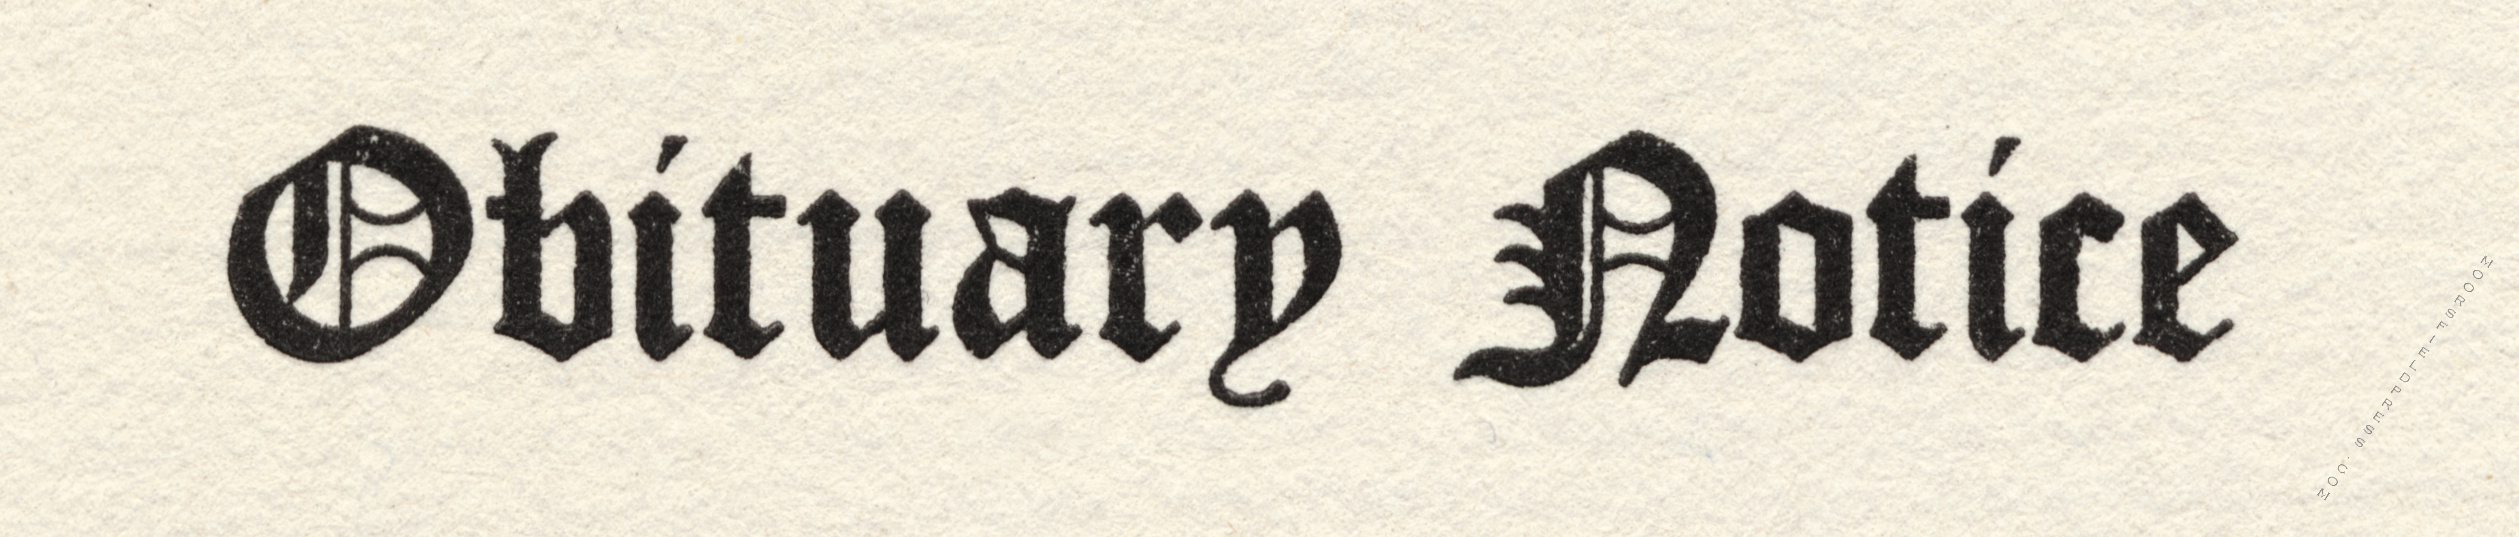 old english font used by the